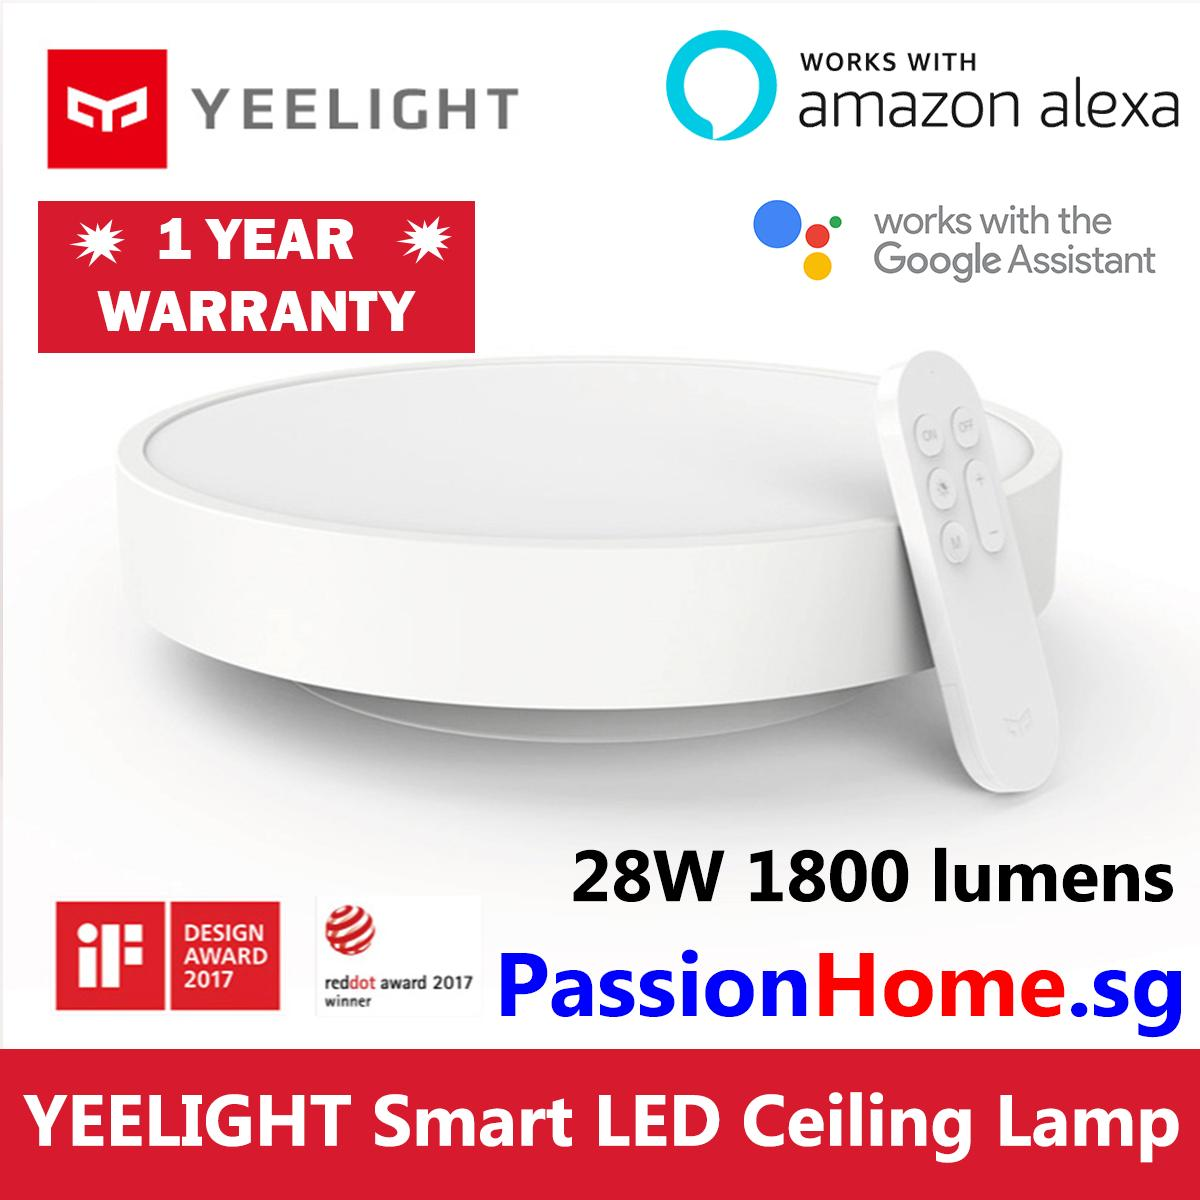 Ble Led Yeelight Lumens Wifi Home Light Remote Ylxd01yl 28w Smart Xiaomi Lampwhite320mm 1800 Control Mijia Included Ceiling 320 WD9YIEH2